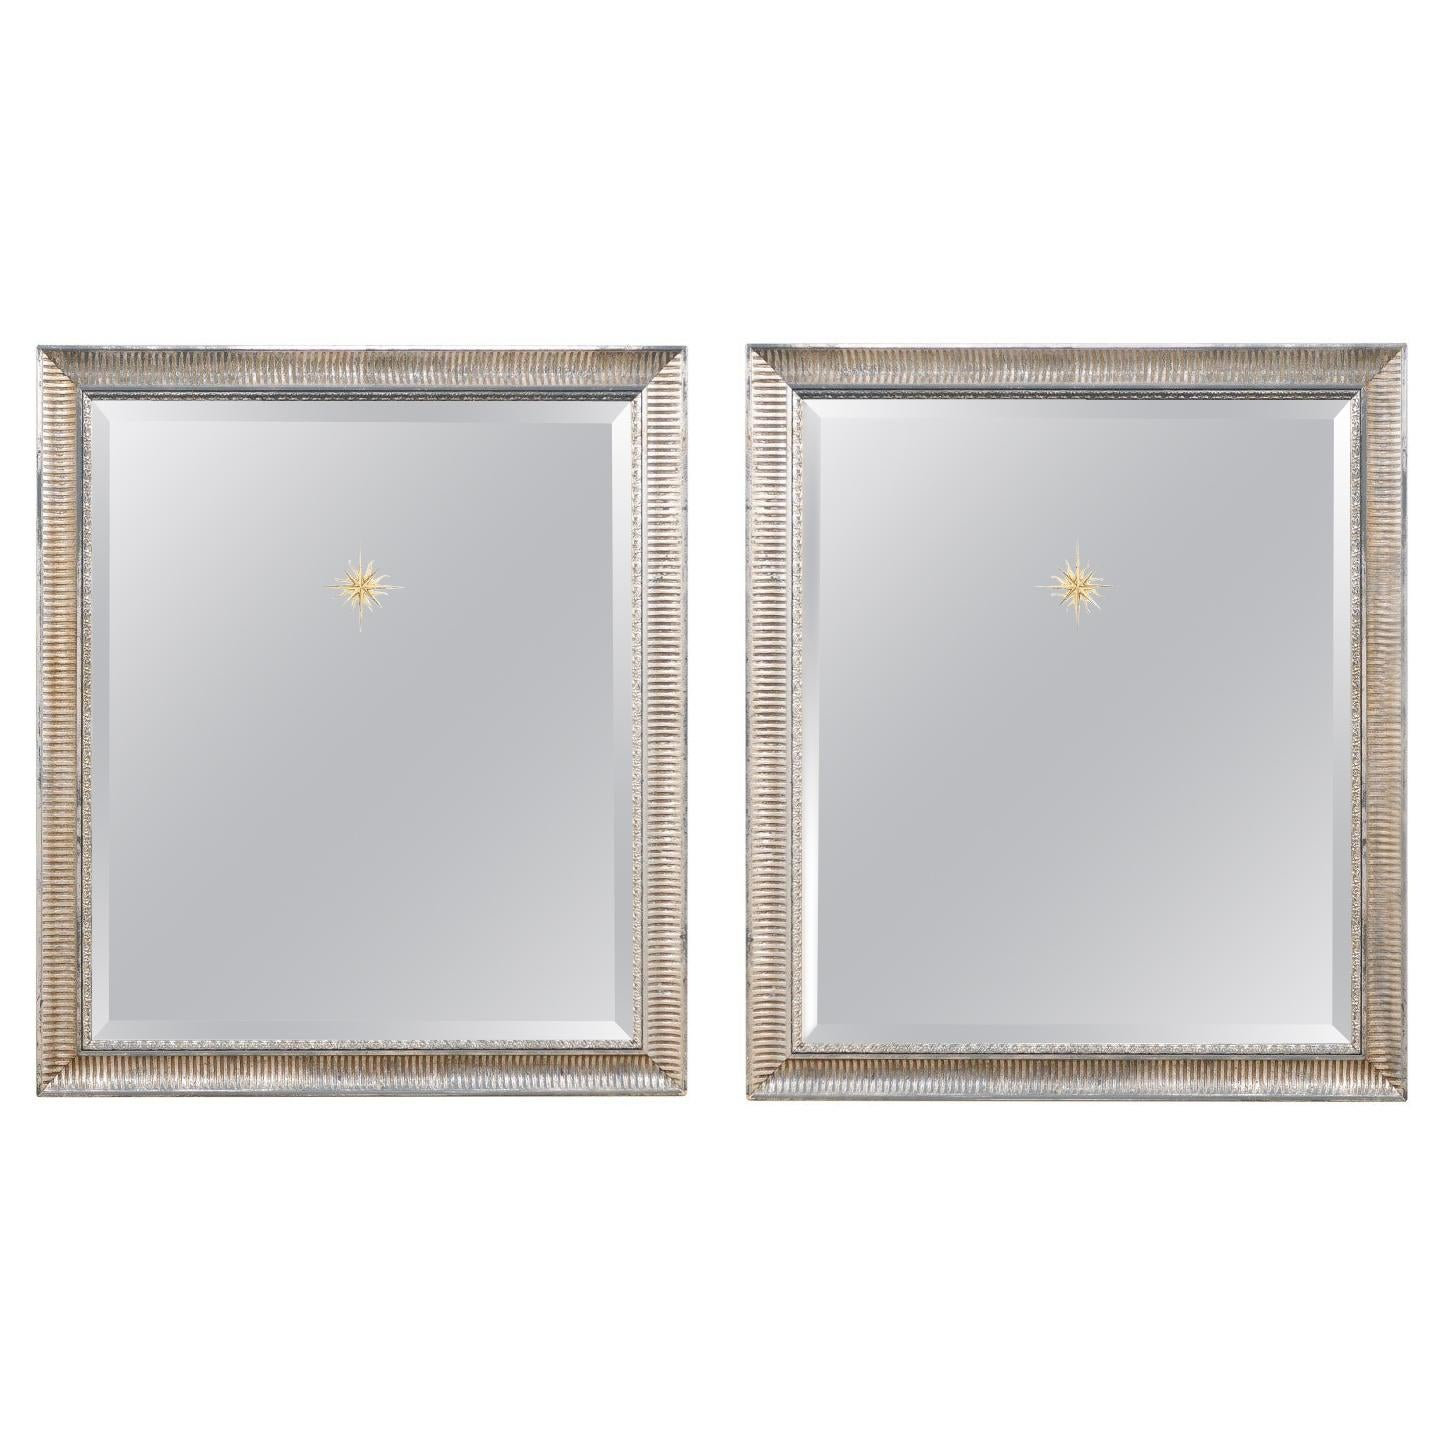 Pair Artisan Crafted Mirrors with Sunburst Accents & Fluted Frames